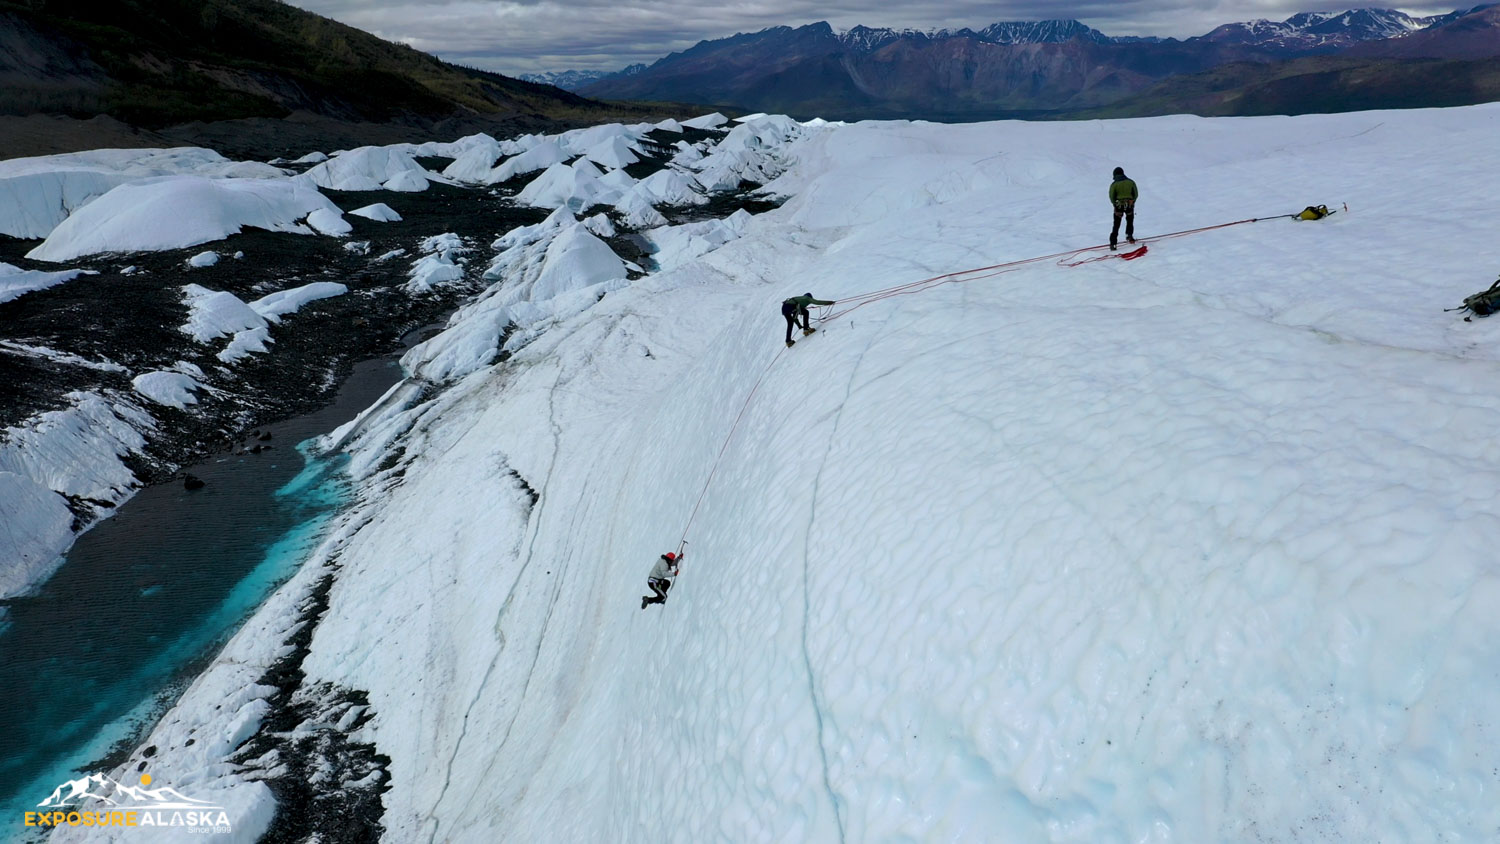 Exposure Alaska Ice Climbing